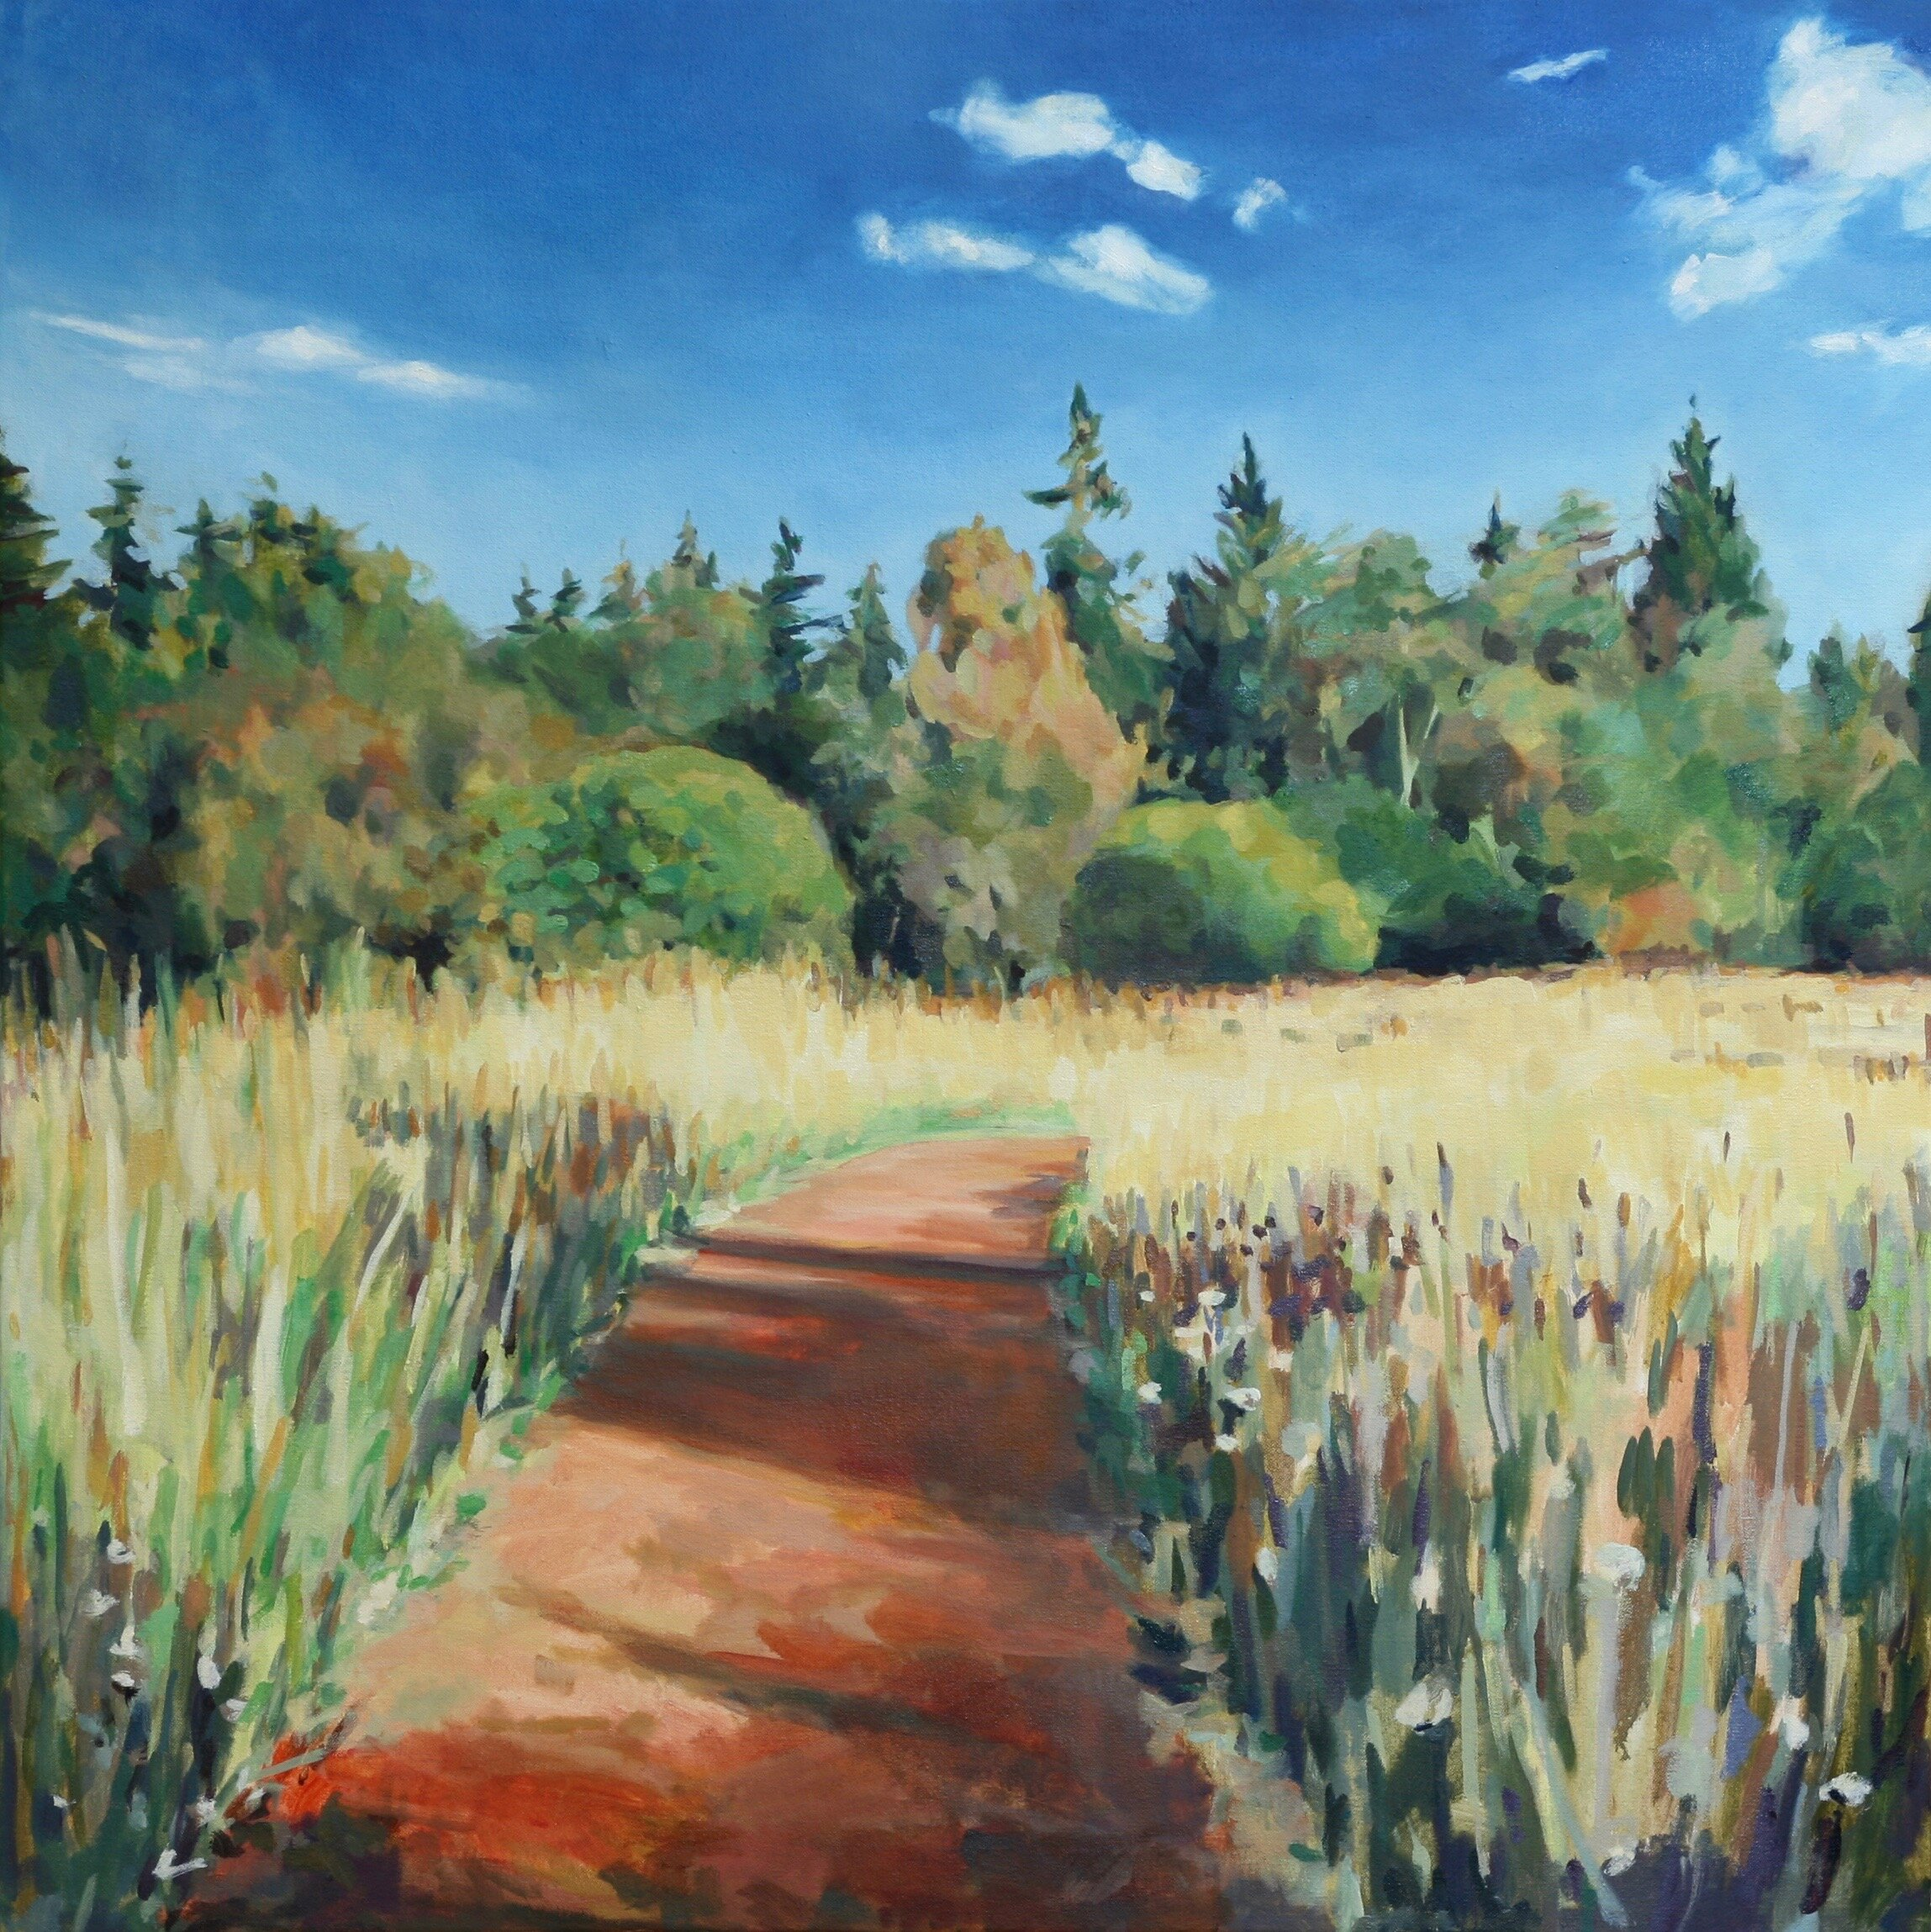 "'Meadow Path'  2016  36"" x 36""  water soluble oil on canvas  available"